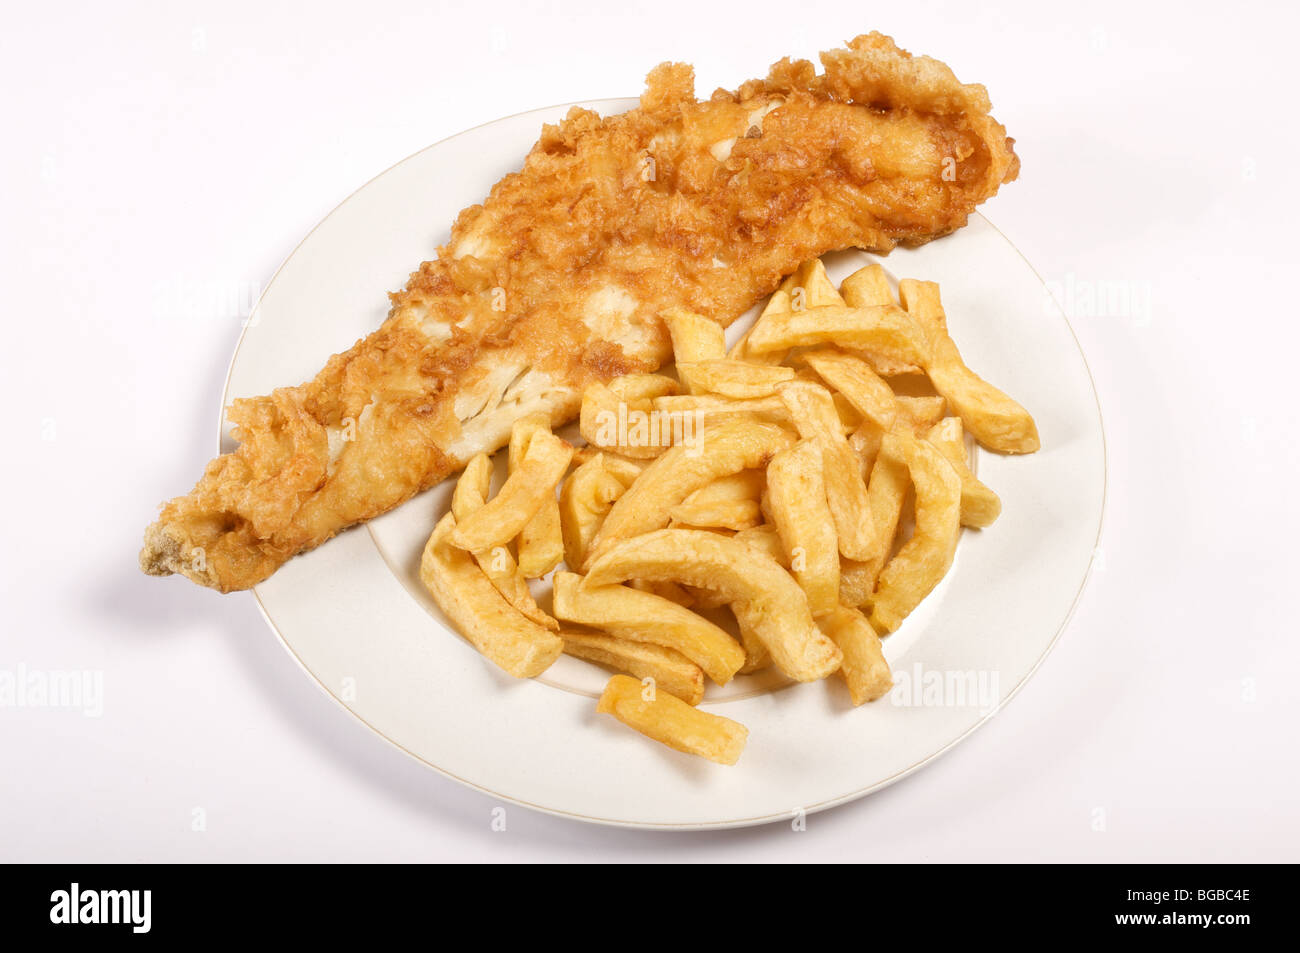 Plate of Fish and chips - Stock Image